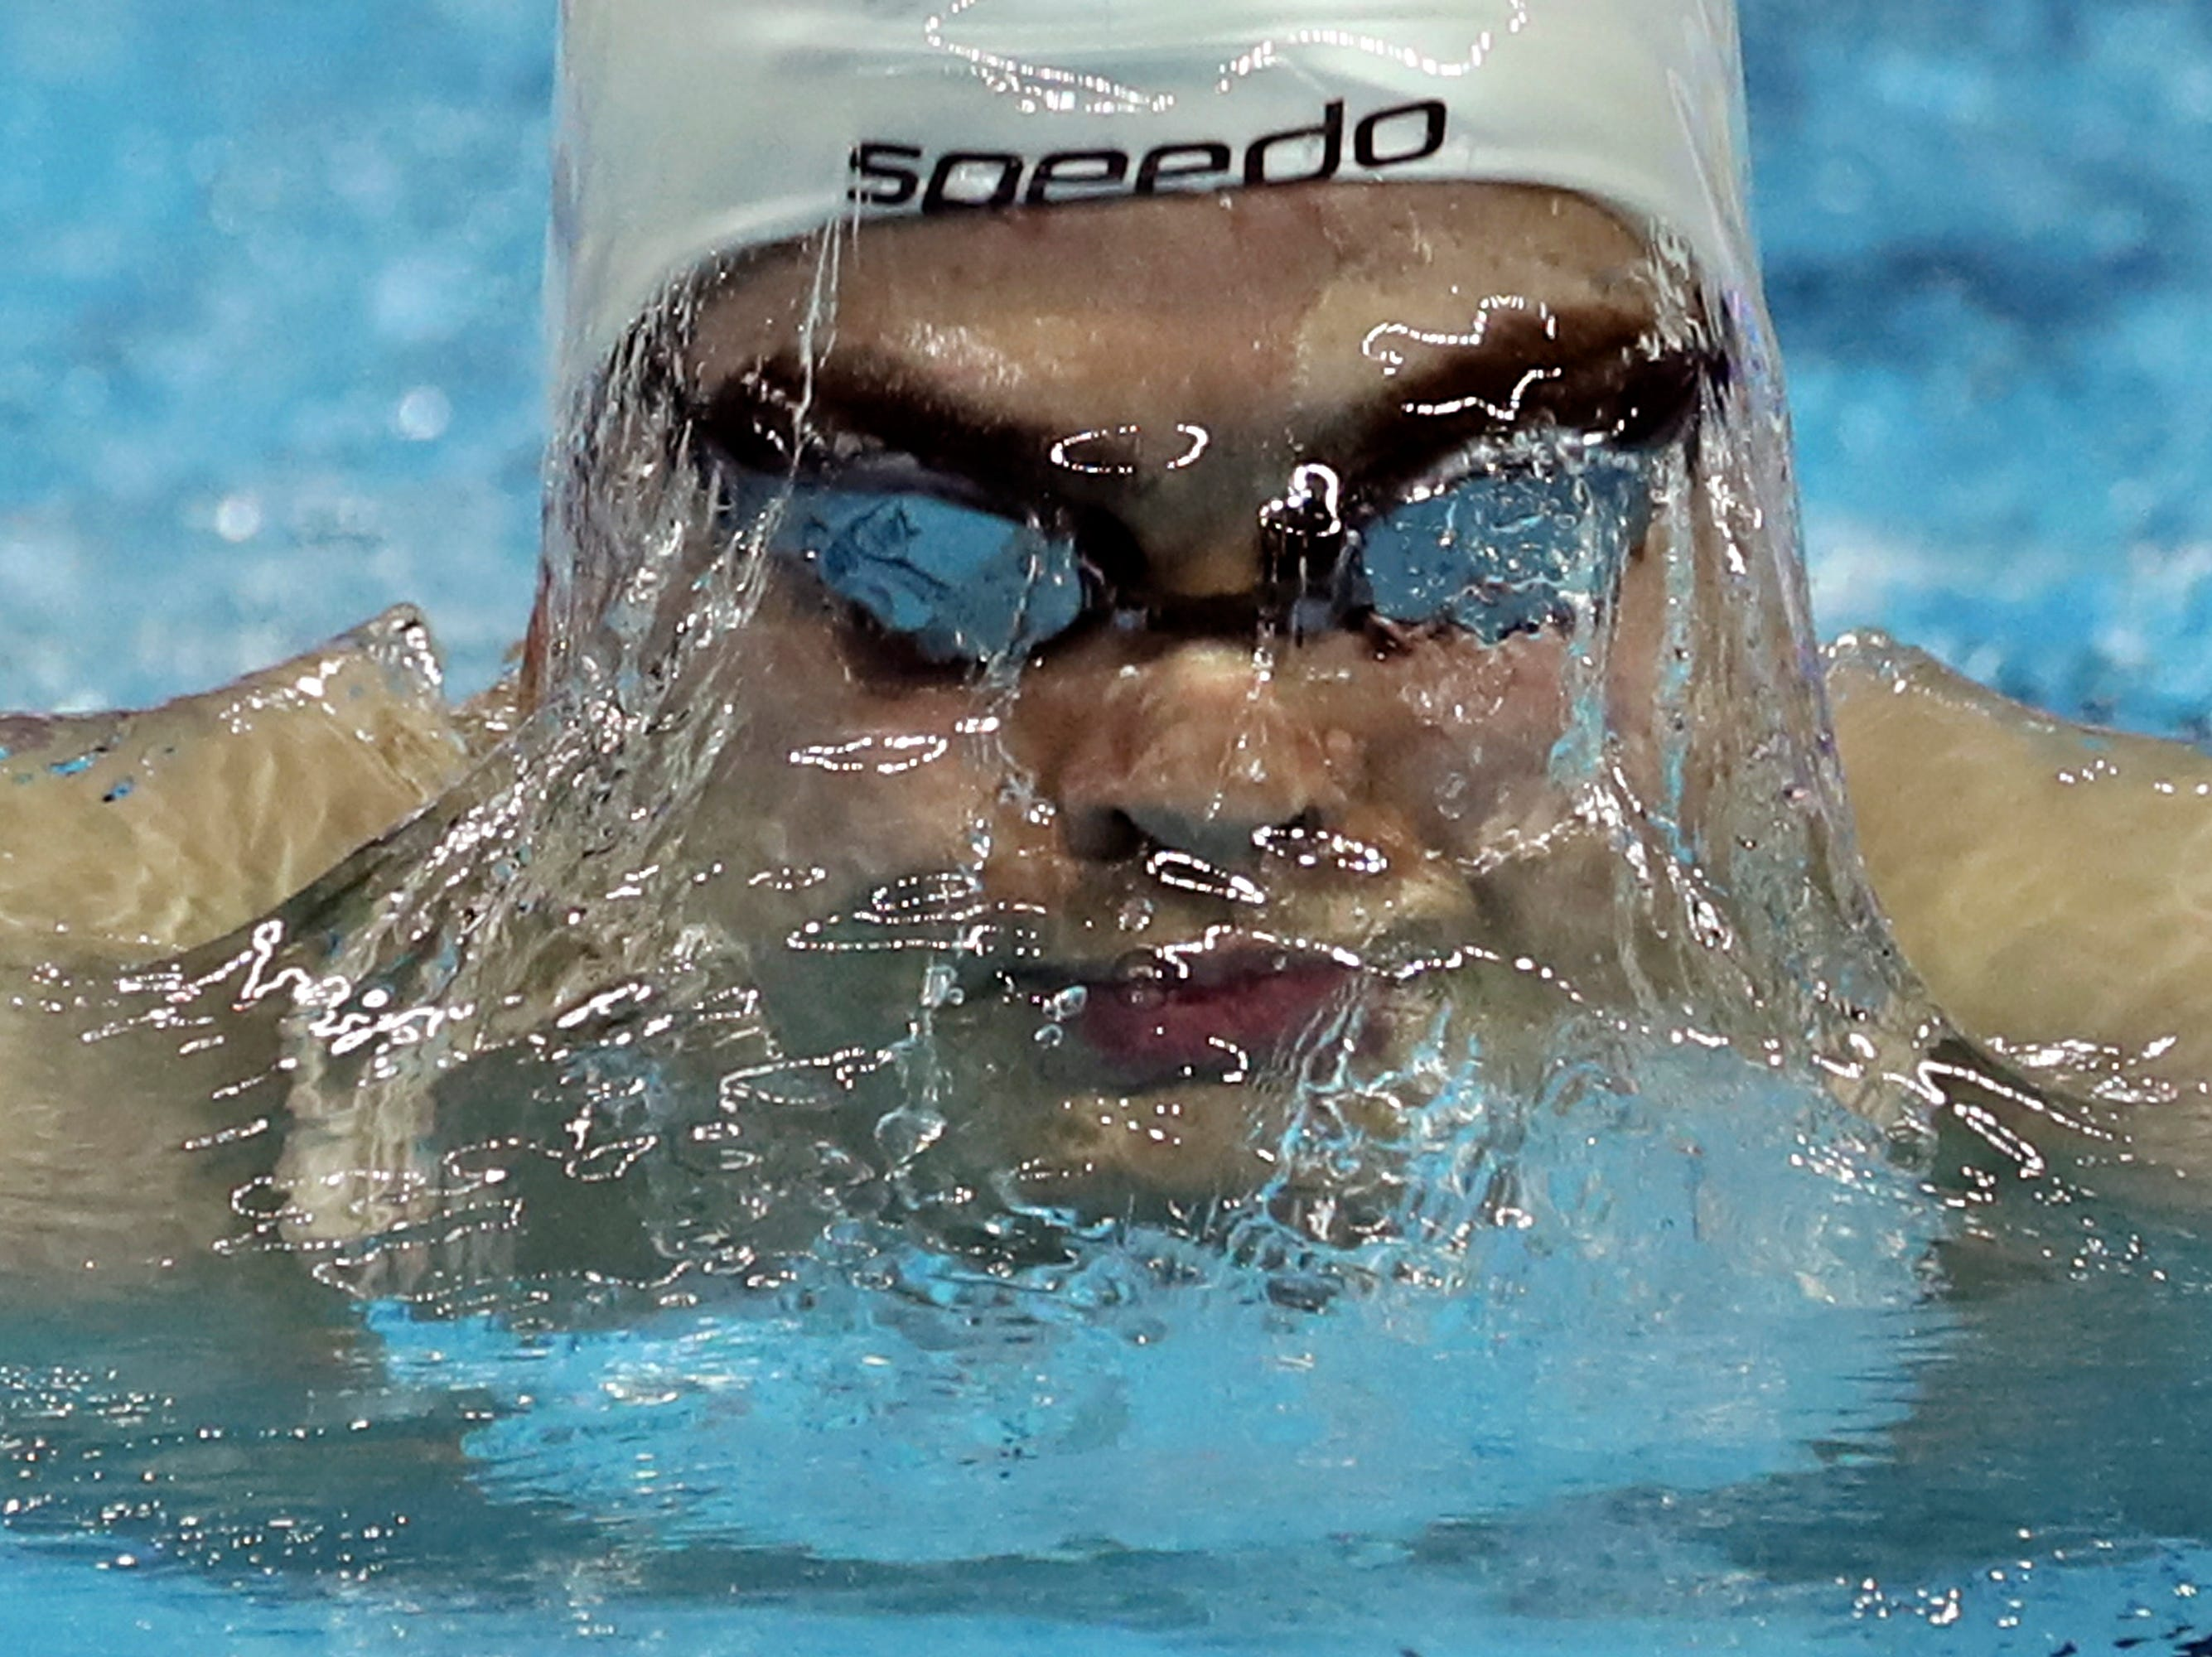 Iceland's Anton Svein McKee competes in heats for the men's 200m breaststroke during the 14th FINA World Swimming Championships in Hangzhou, China Thursday, Dec. 13, 2018.